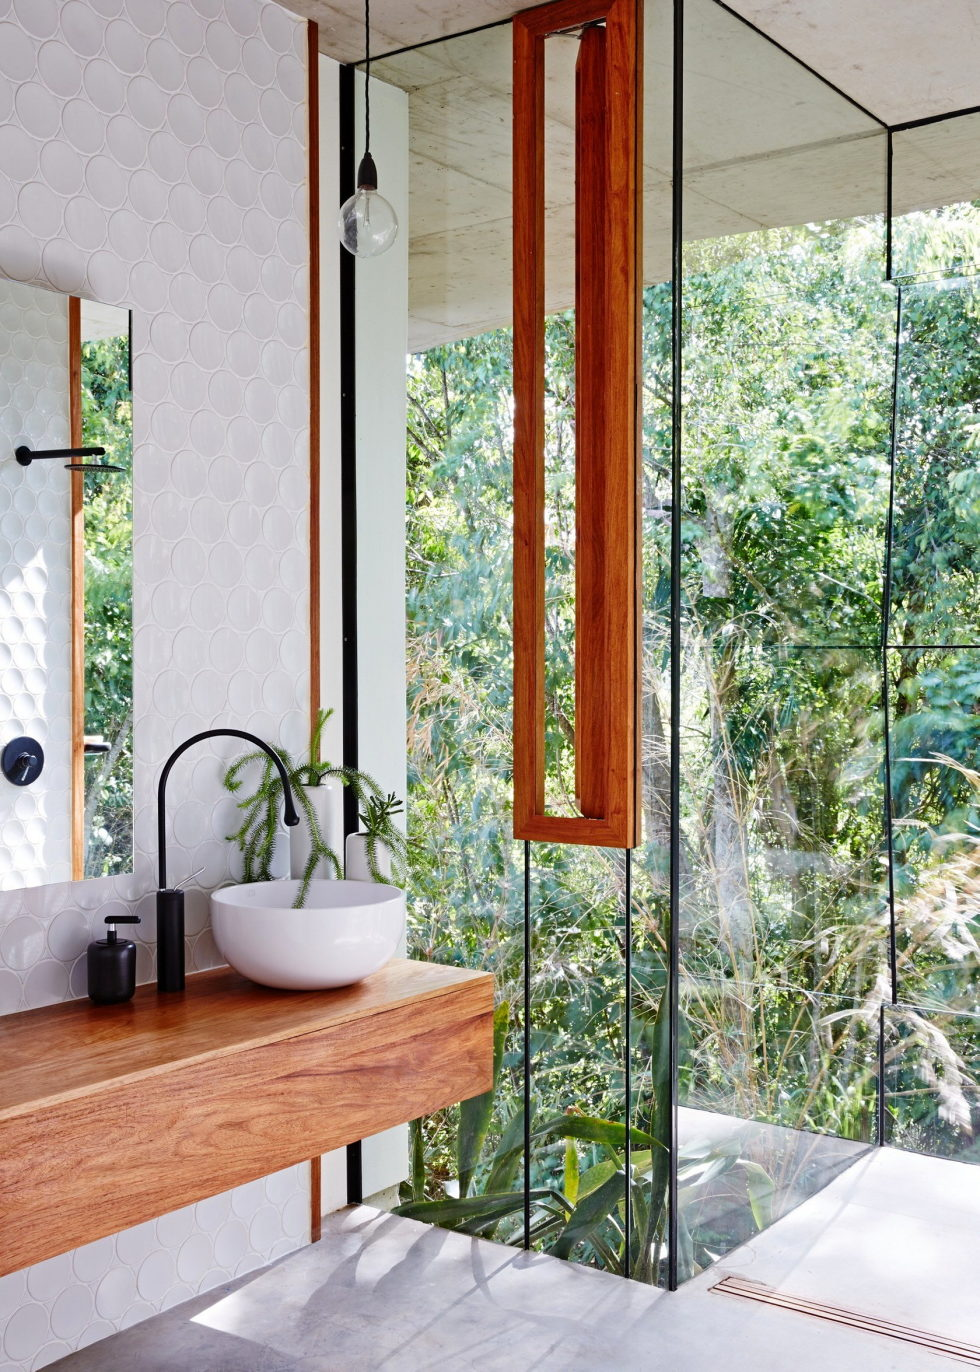 The glass house Planchonella in the tropical forest from Jesse Bennett Architect 20